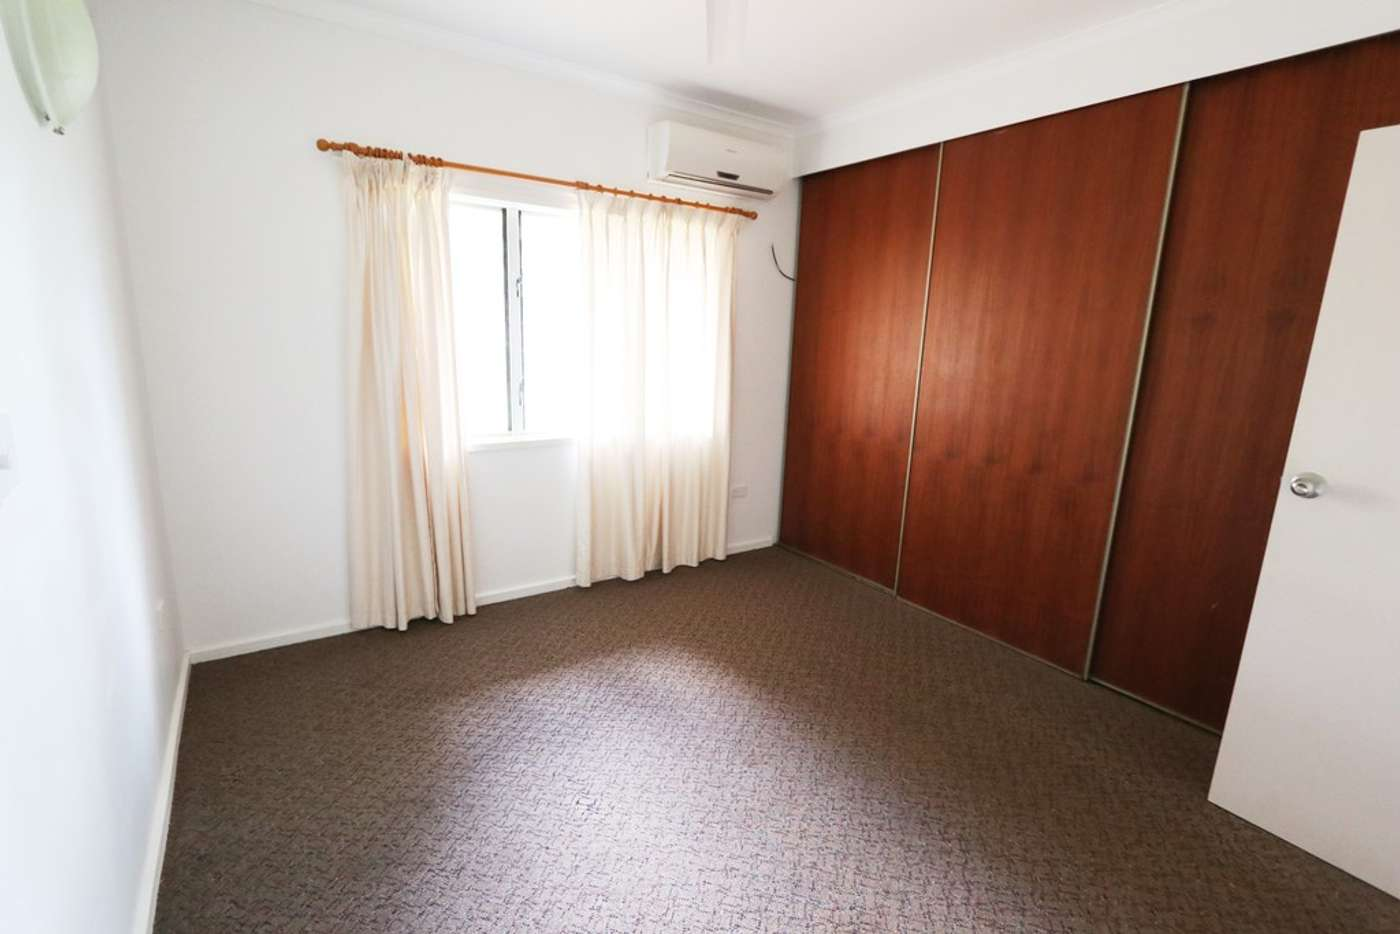 Sixth view of Homely house listing, 16 De Julia Court, Katherine NT 850